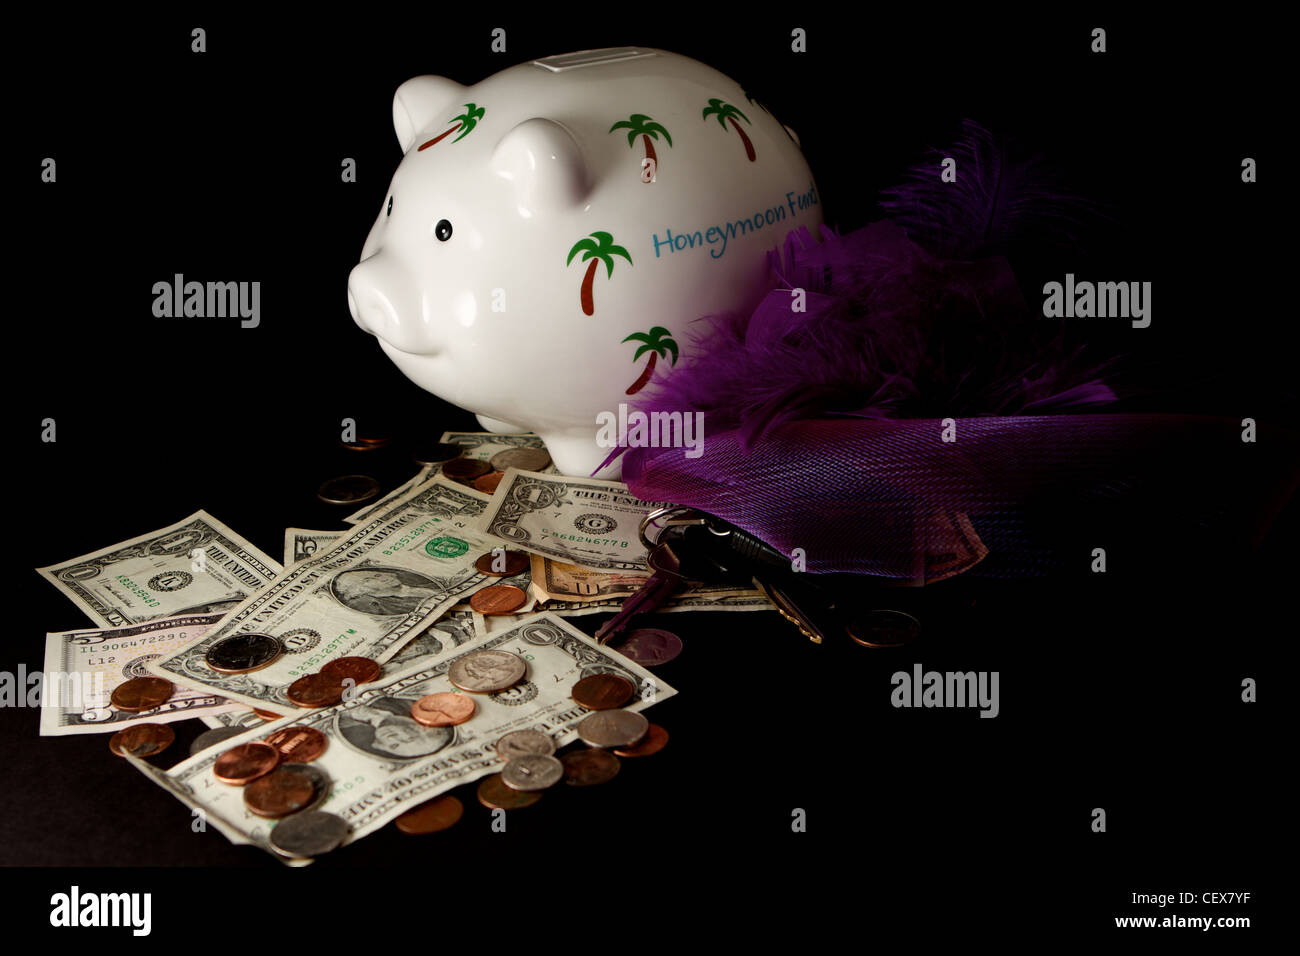 Honeymoon Piggy Bank with cash on a black background Stock Photo